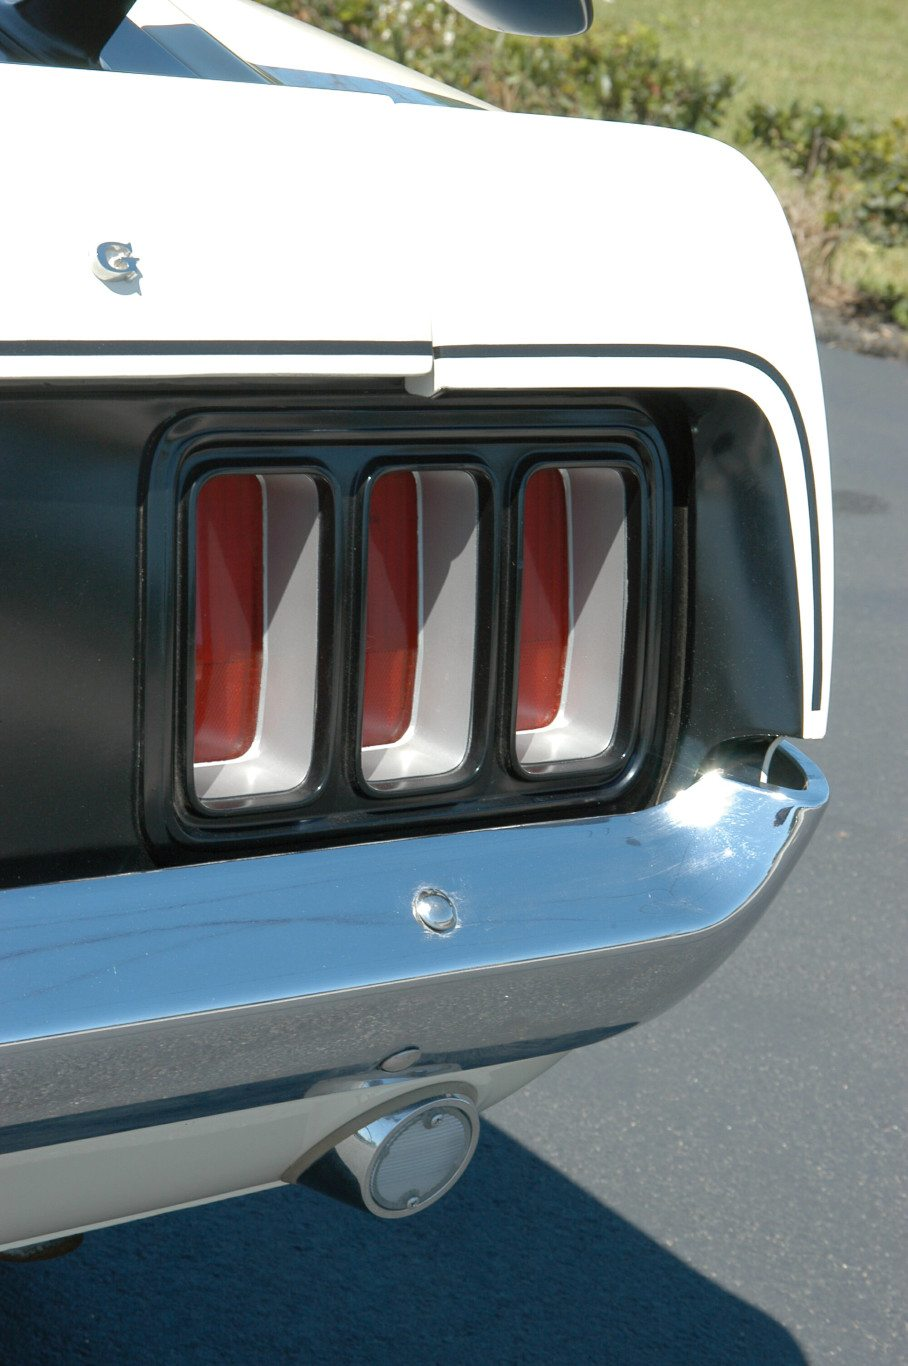 Fords Boss 302 429 Mustangs Heacock Classic Insurance Ford Ranchero Ignition Condition Modified 1970 Tail Light